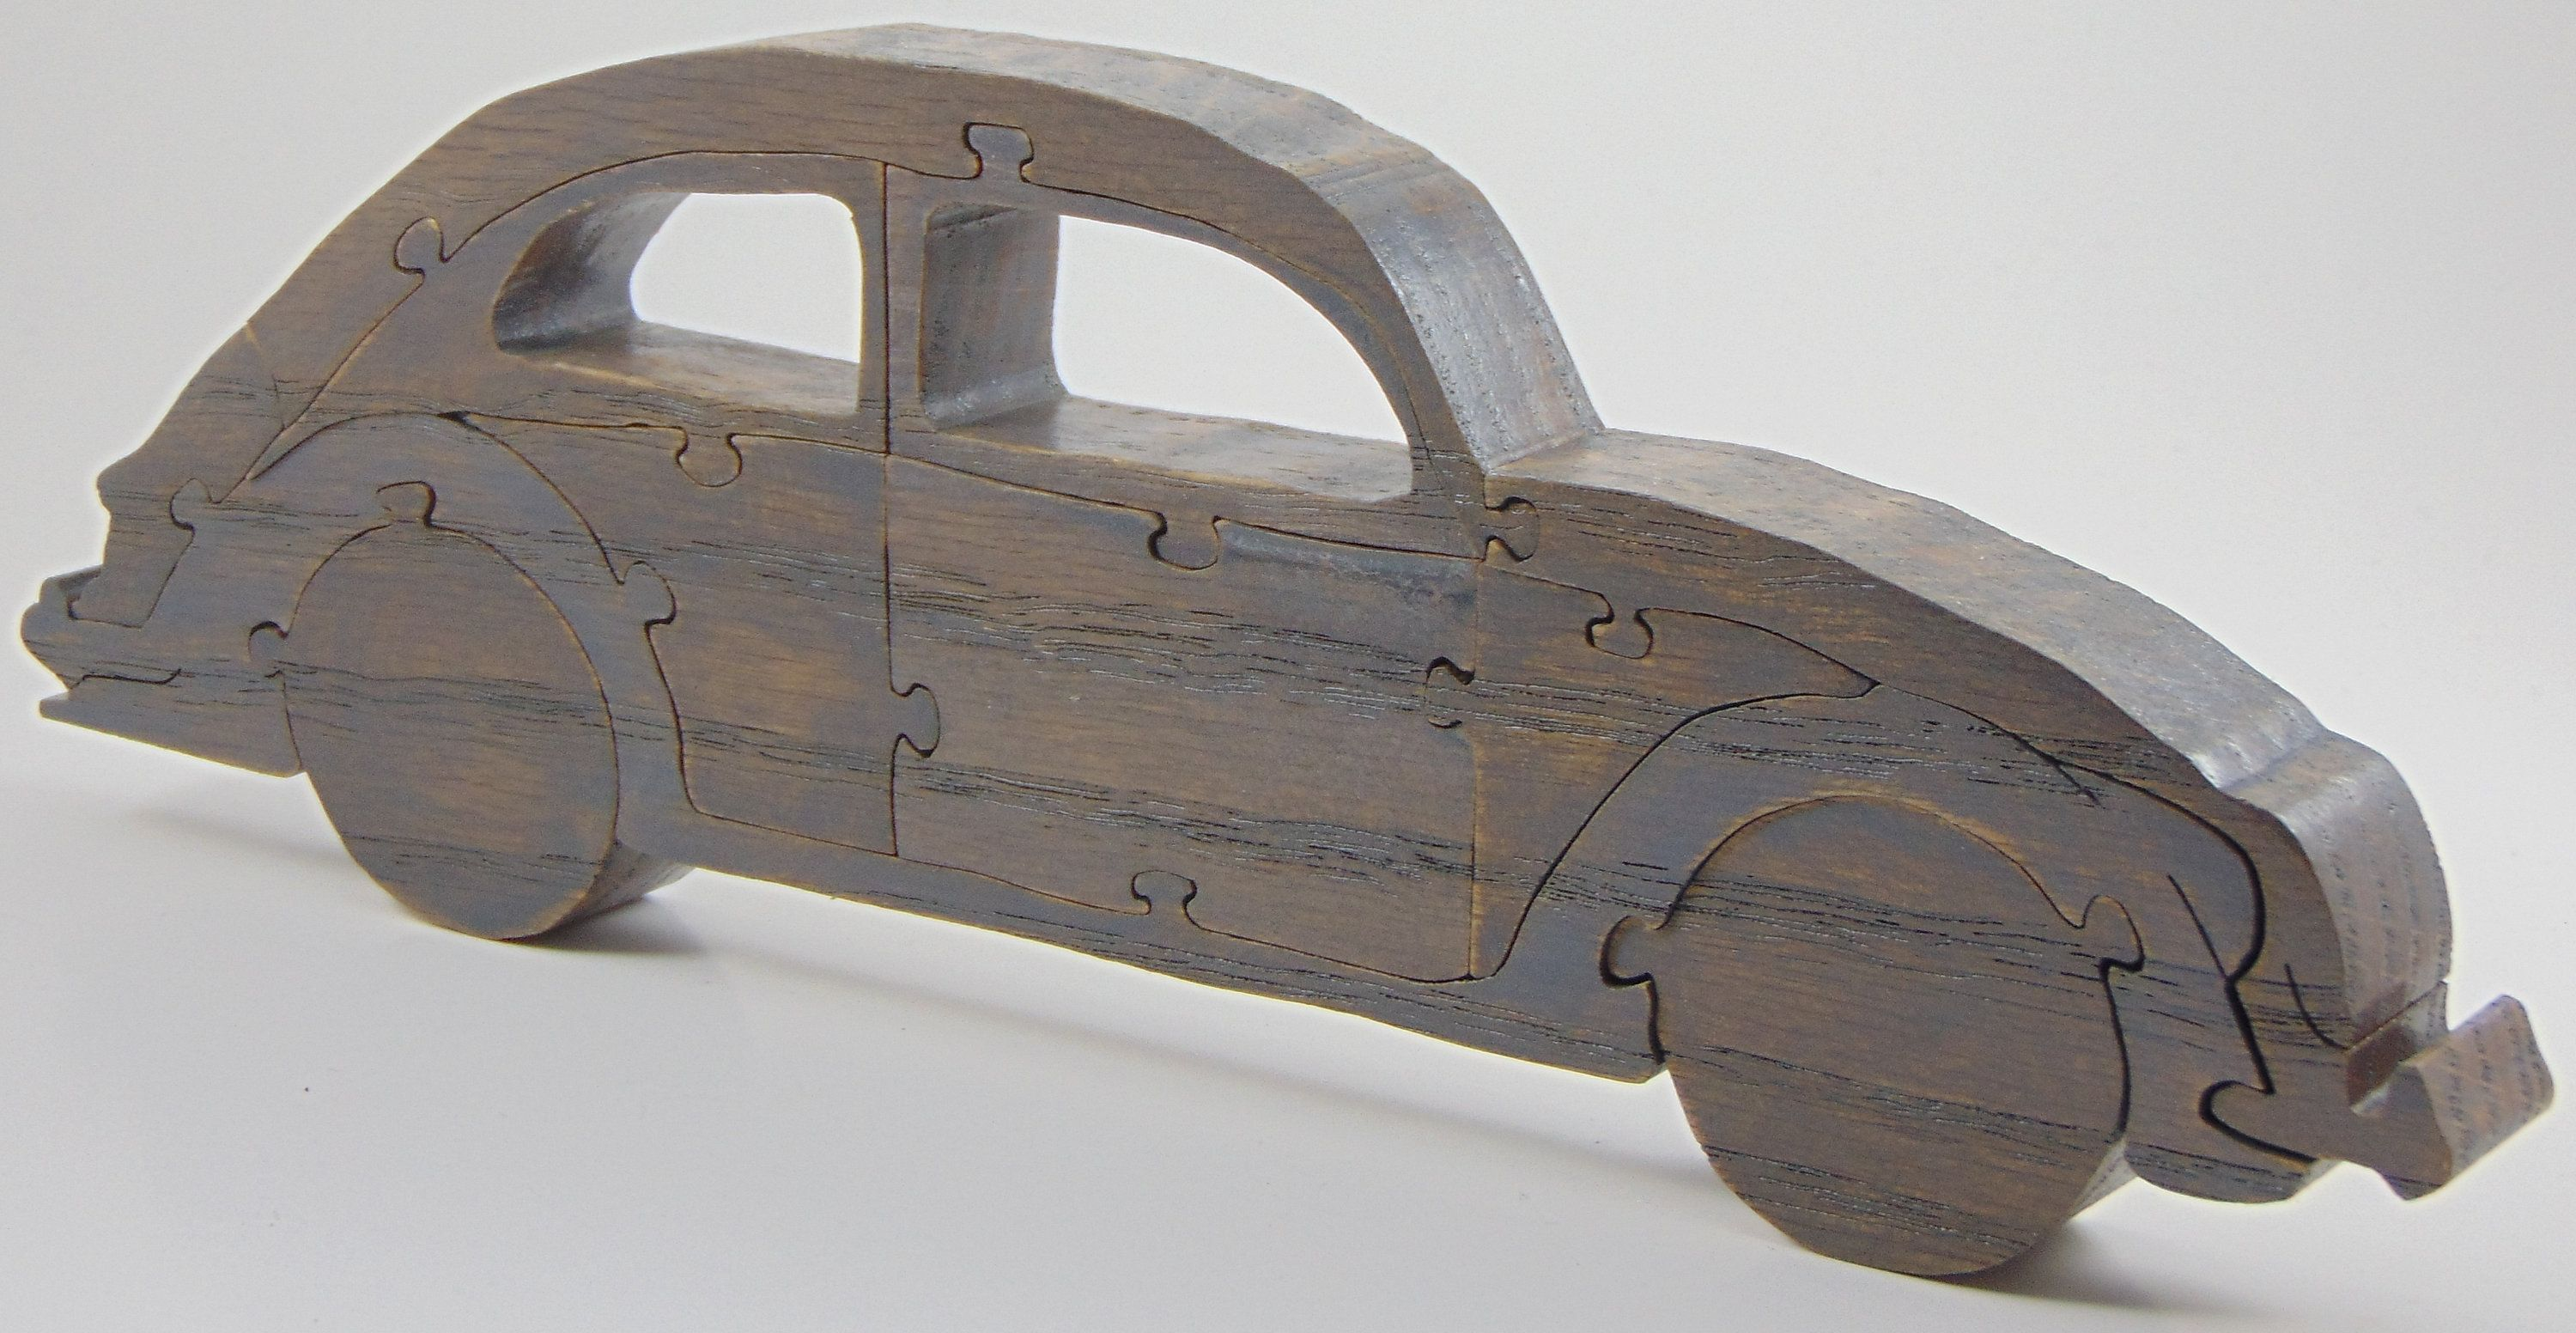 Rustic VW Beetle Toy Car Puzzle, Classic Car, Volkswagen